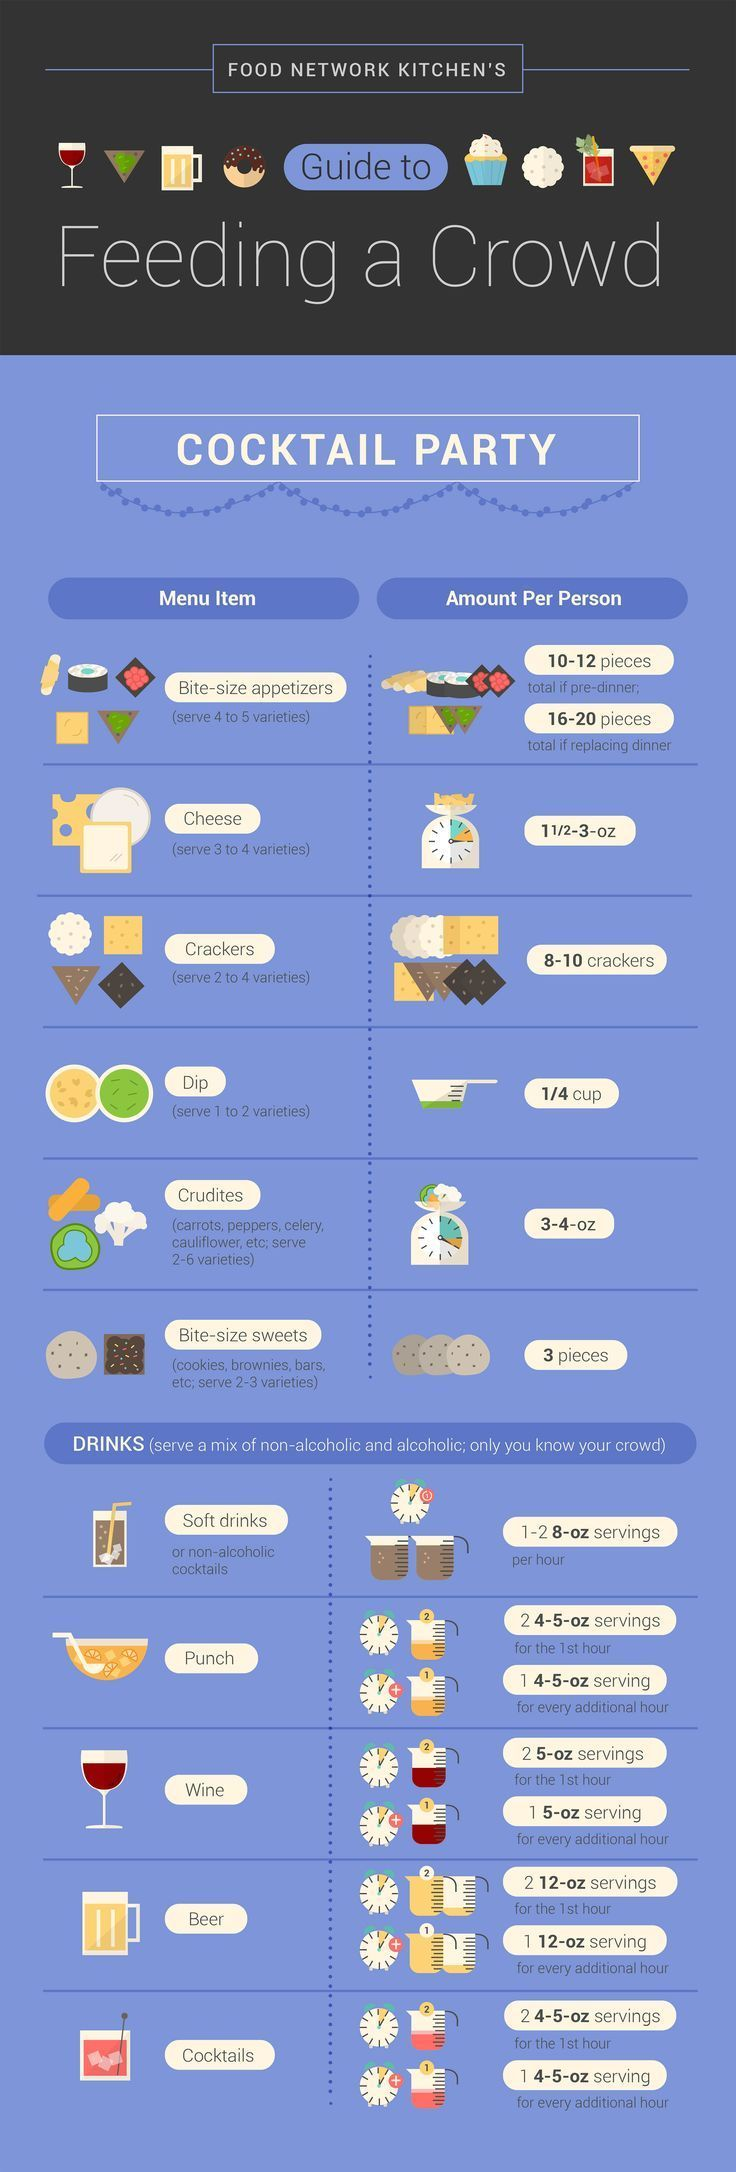 How much food to serve at a cocktail party